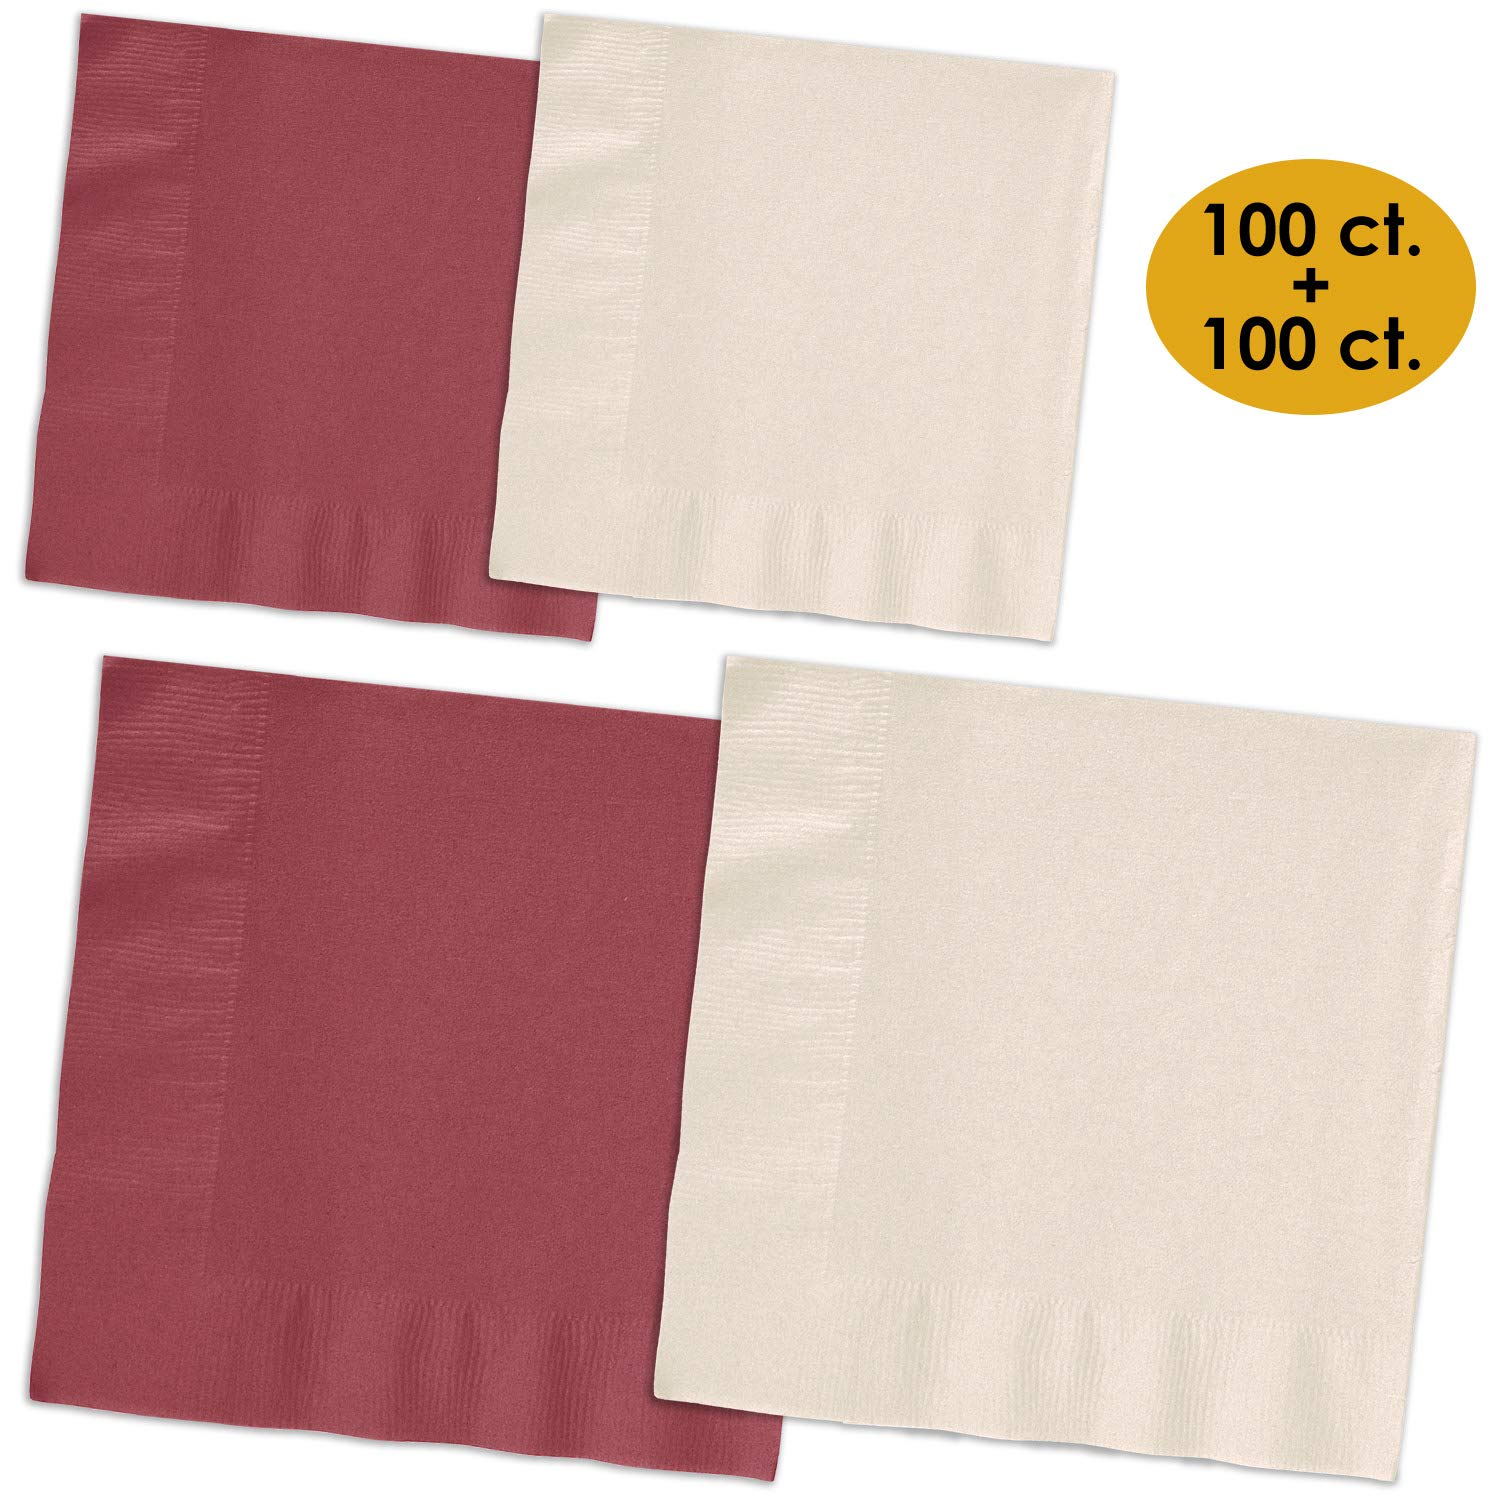 200 Napkins - Burgundy & Ivory - 100 Beverage Napkins + 100 Luncheon Napkins, 2-Ply, 50 Per Color Per Type by HeroFiber